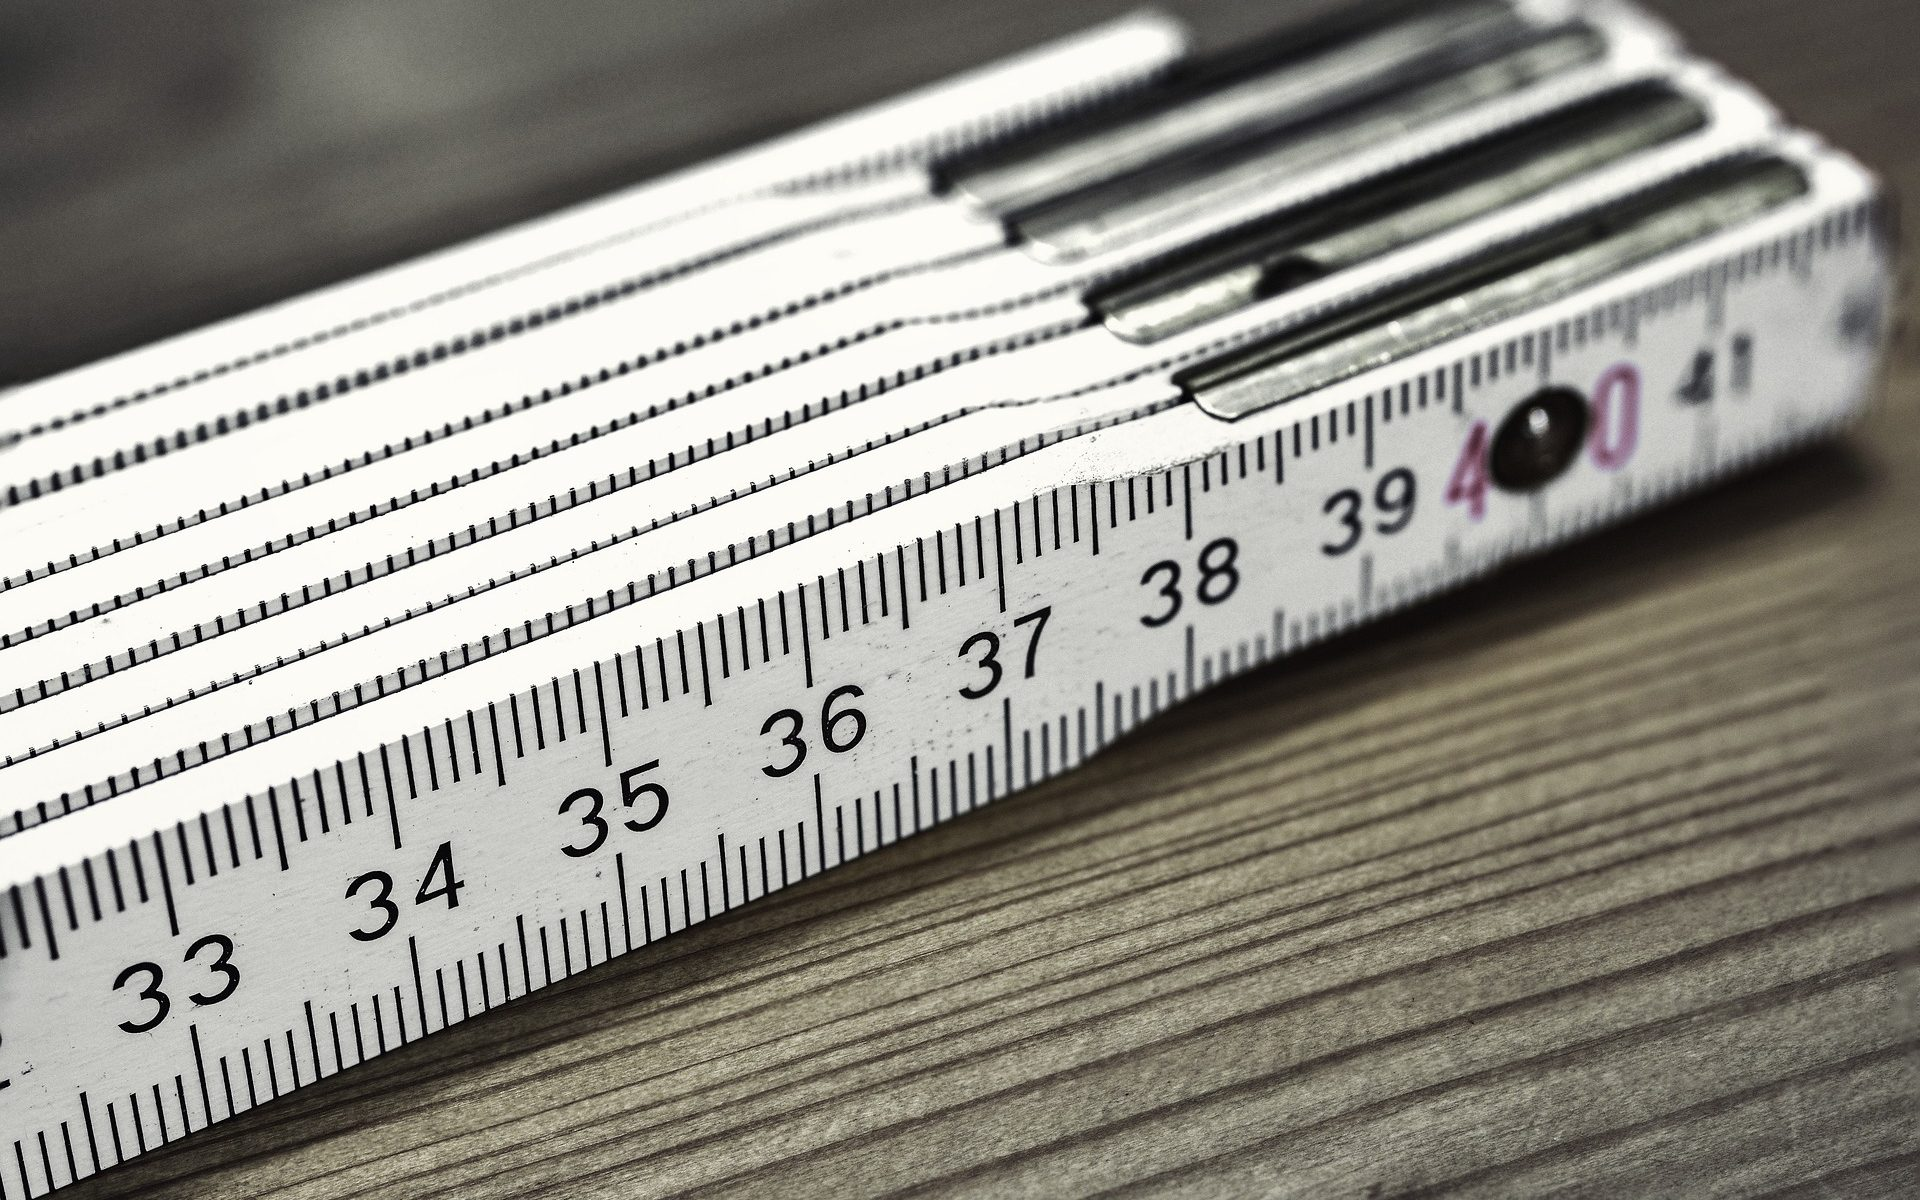 A picture of a folding ruler, which I'm using as a metaphor for surveys as a measurement tool